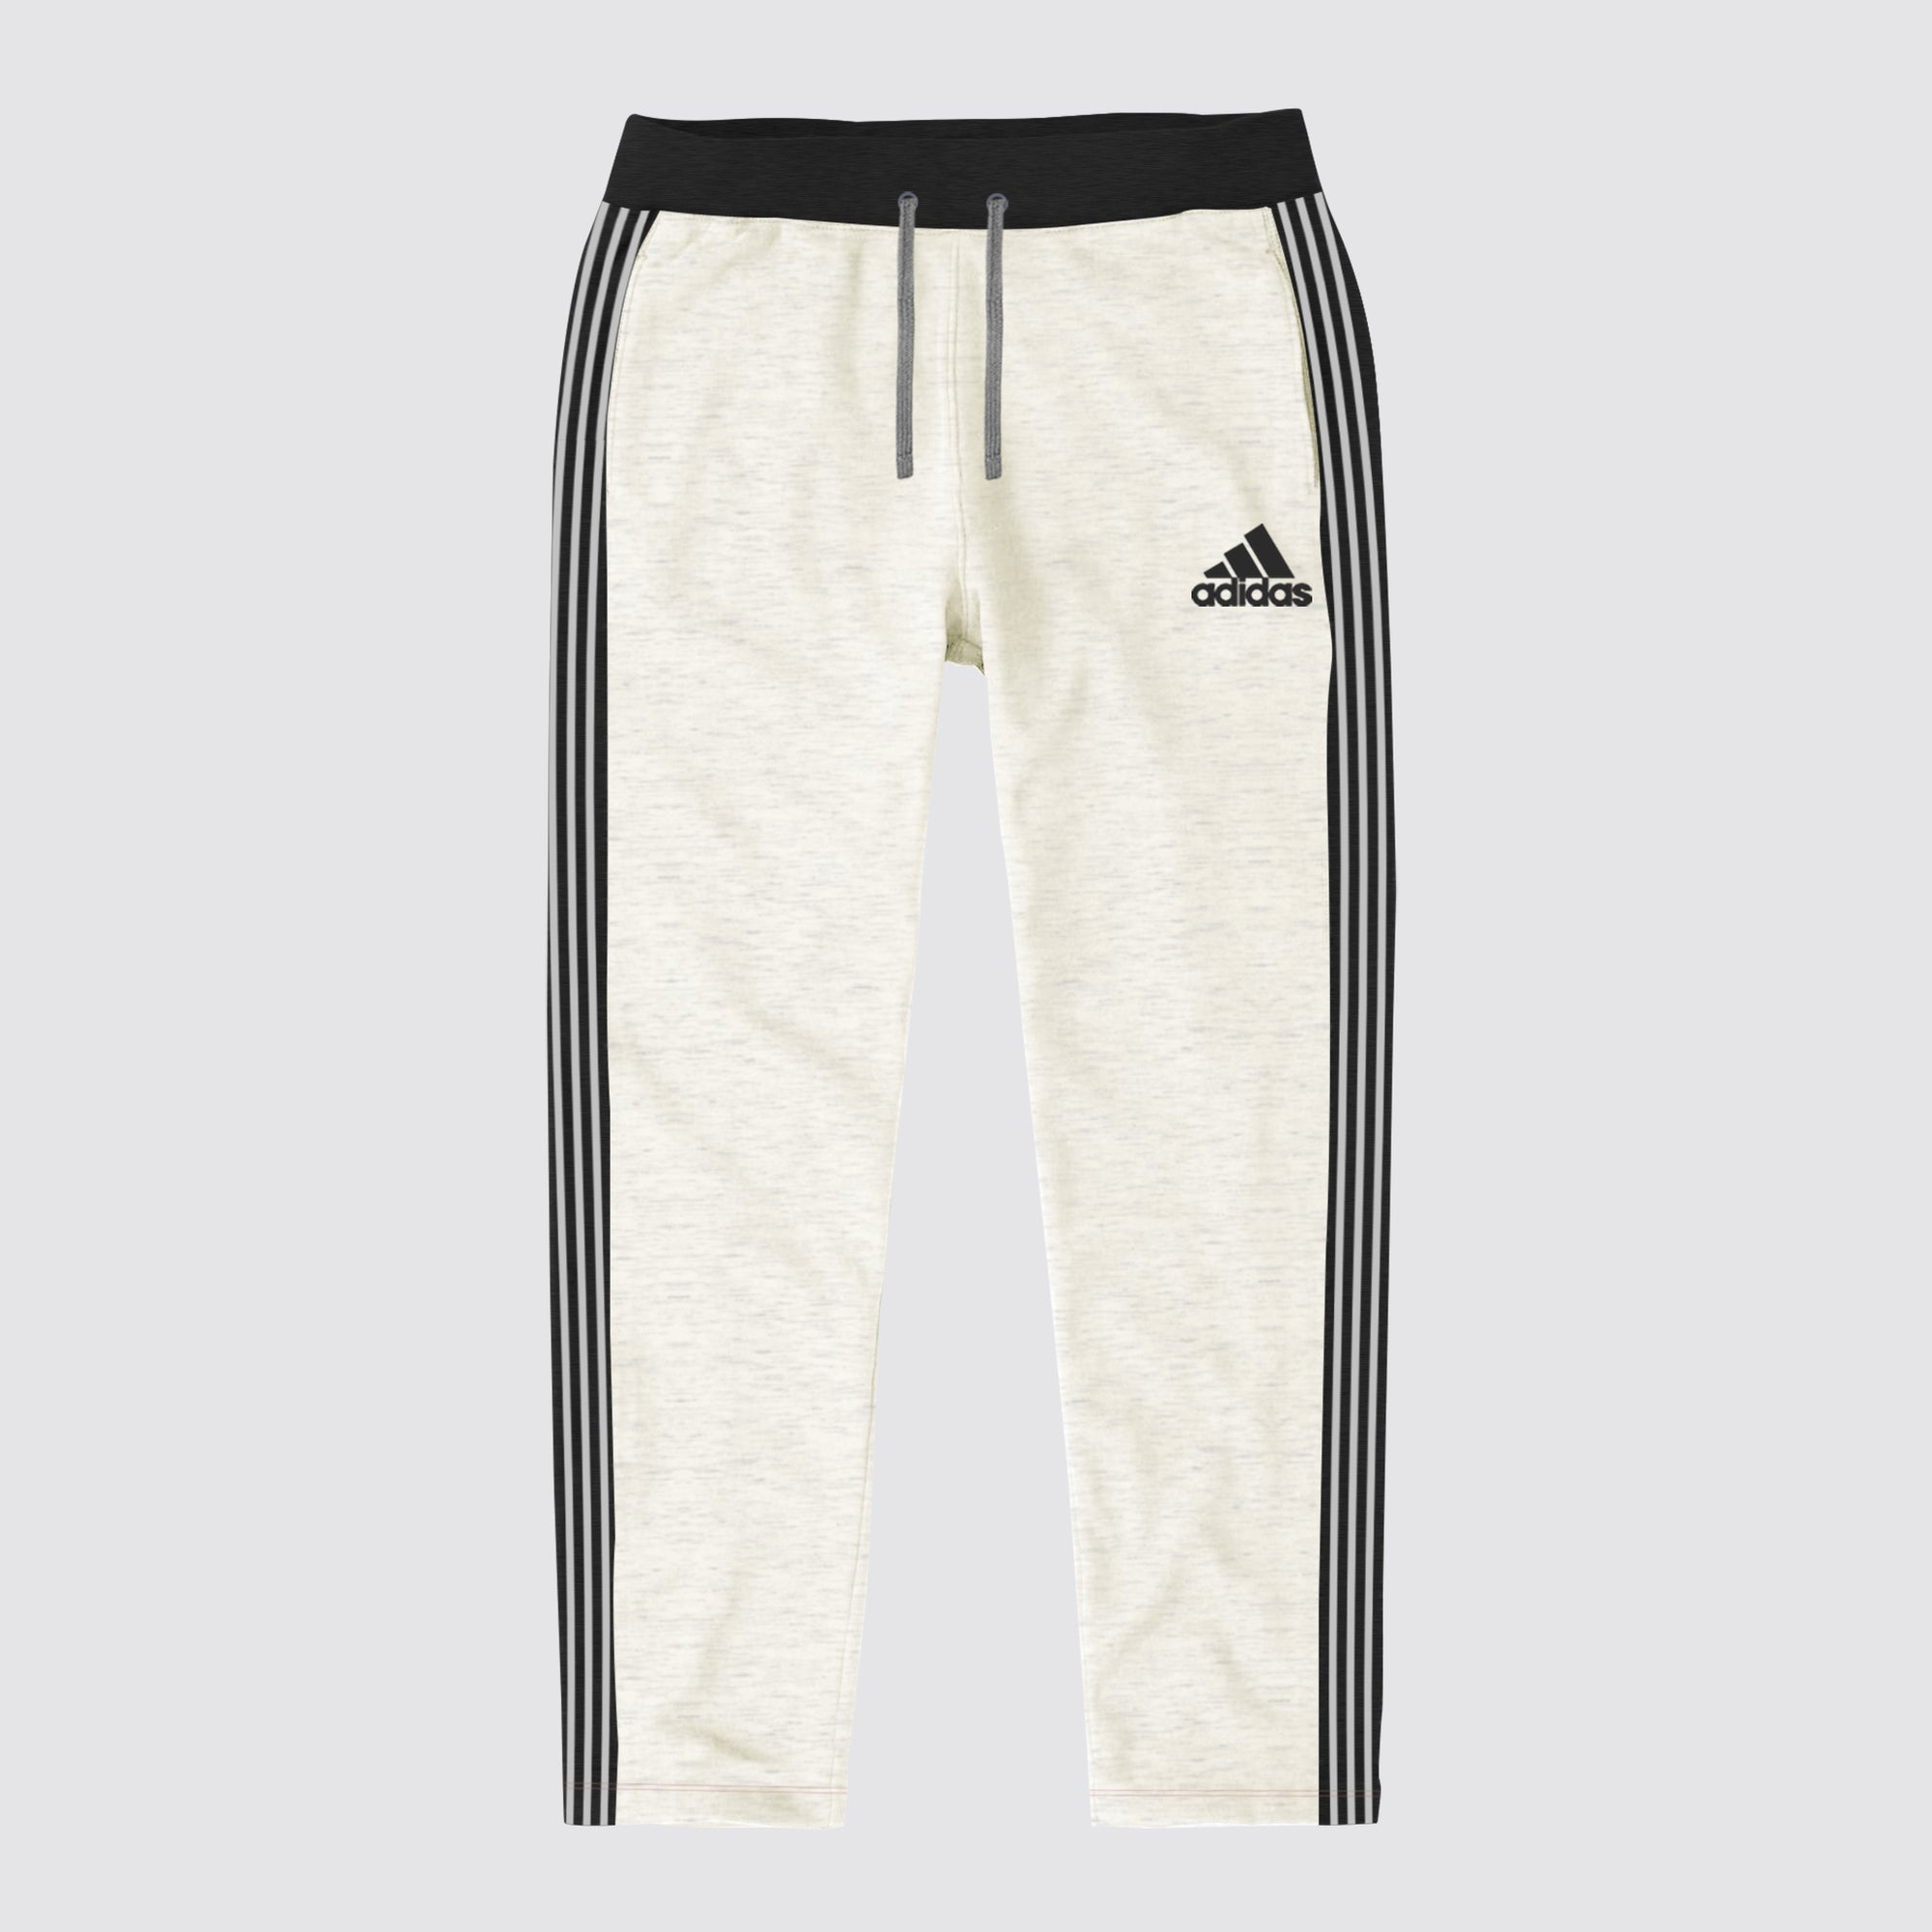 Adidas Single Jersey Regular Fit Trouser For Men-Light Yellow Melange with Charcoal & Grey Stripe-BE8676